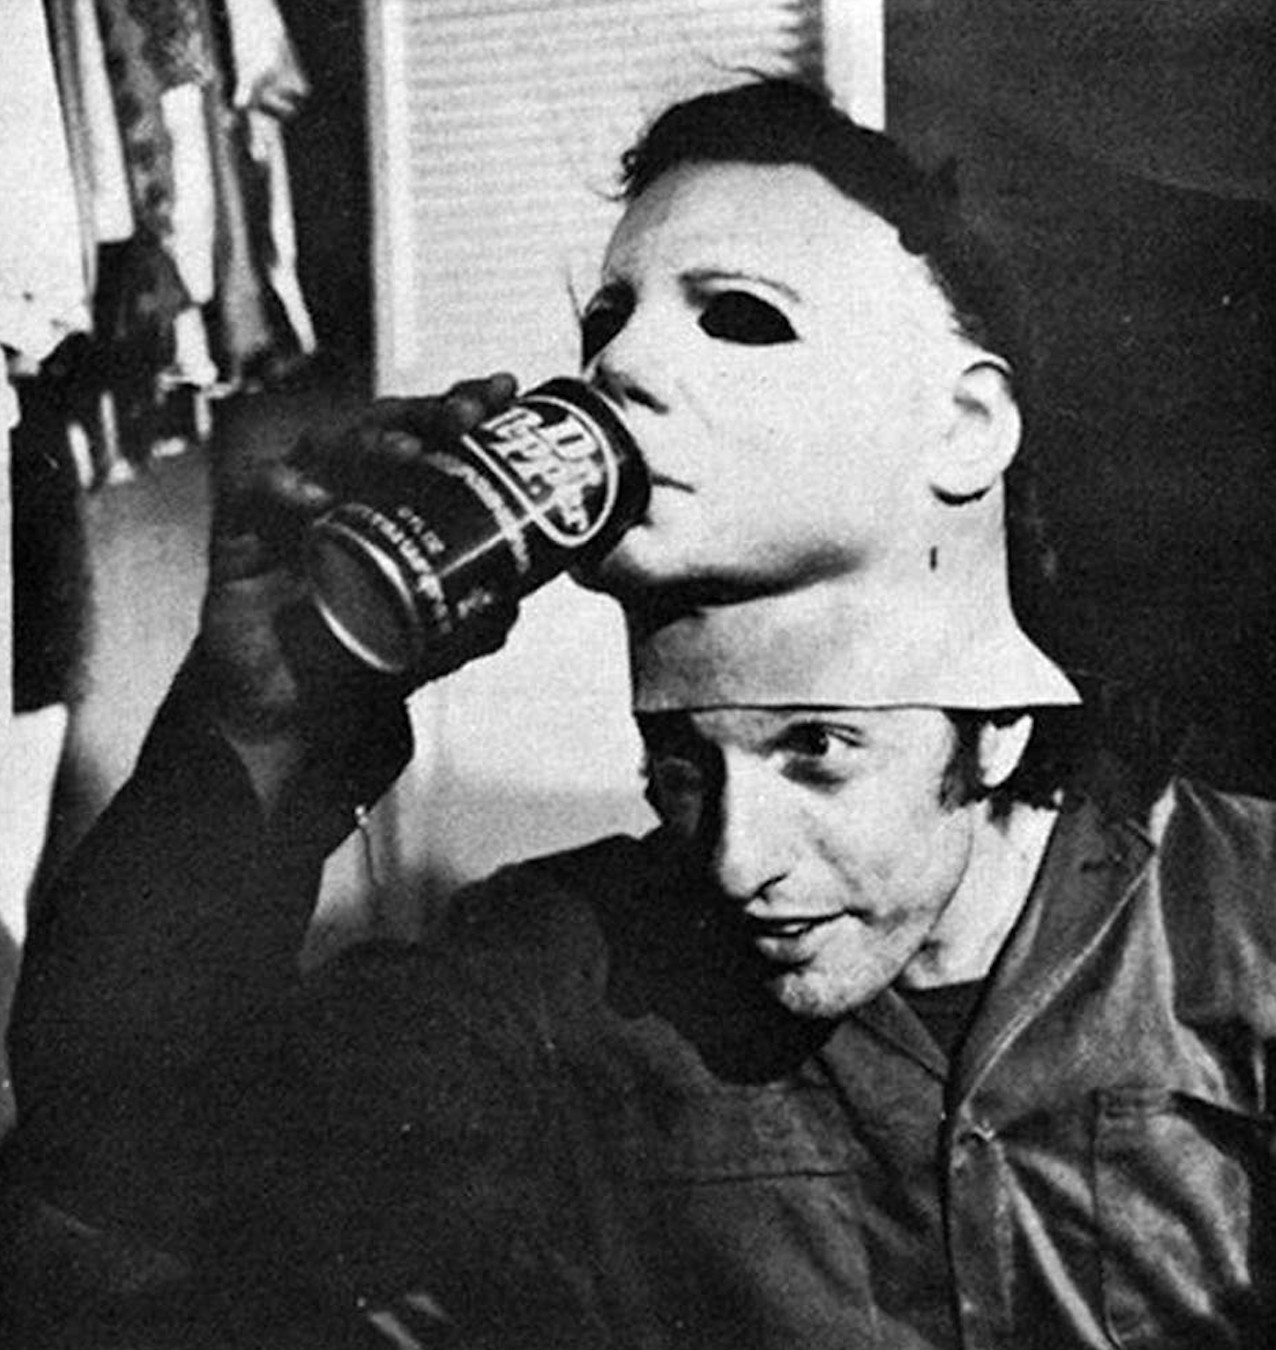 Nick Castle on set. (Compass International Pictures | Universal)